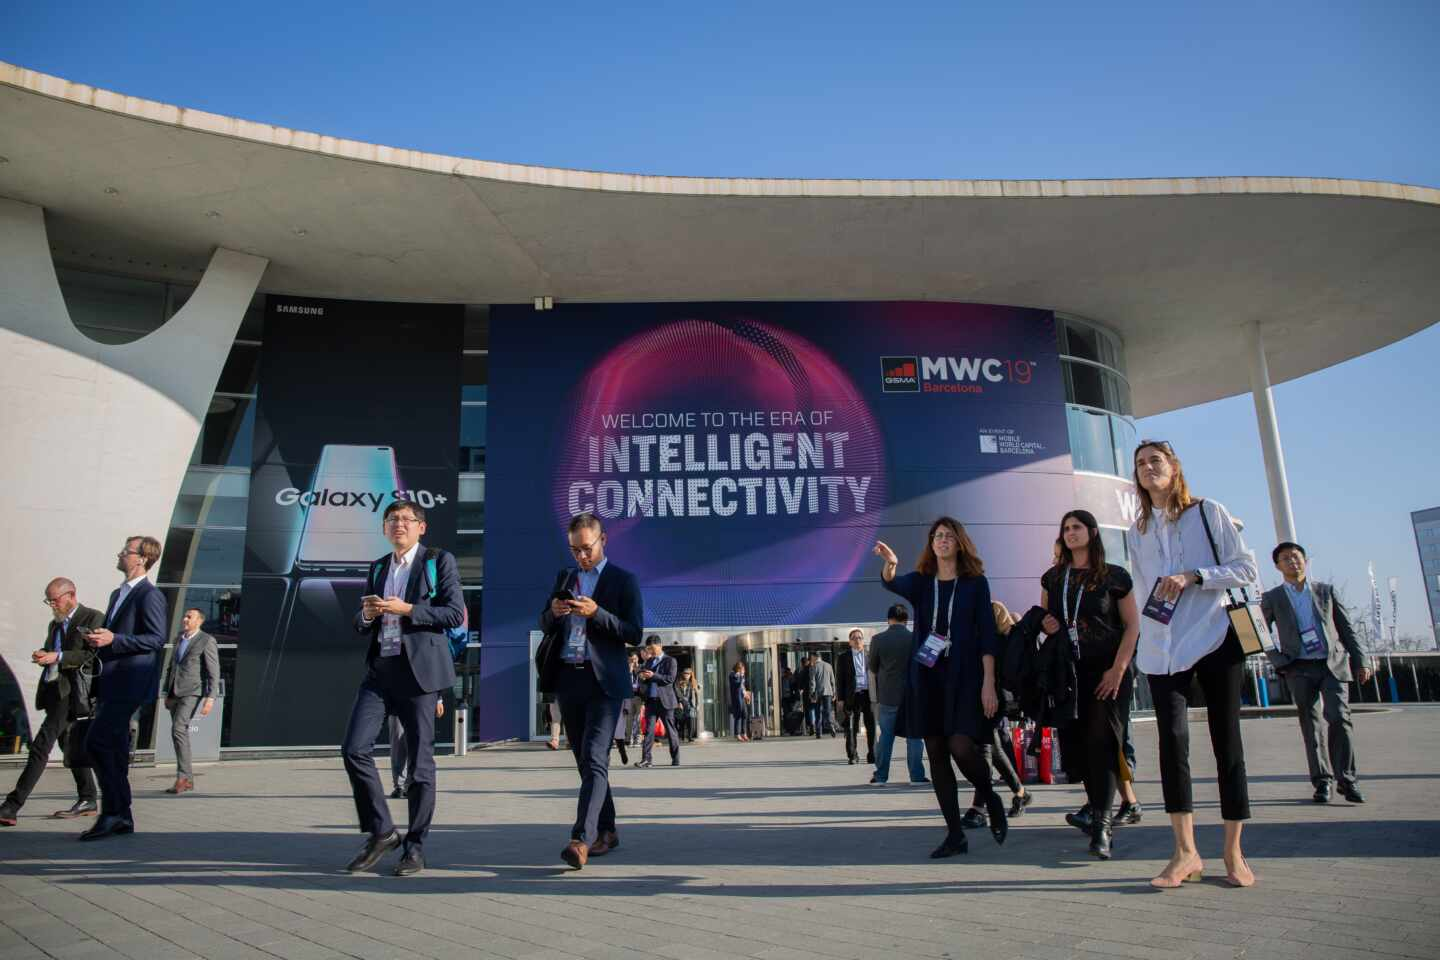 Asistentes al Mobile World Congress (MWC) de Barcelona en 2019.